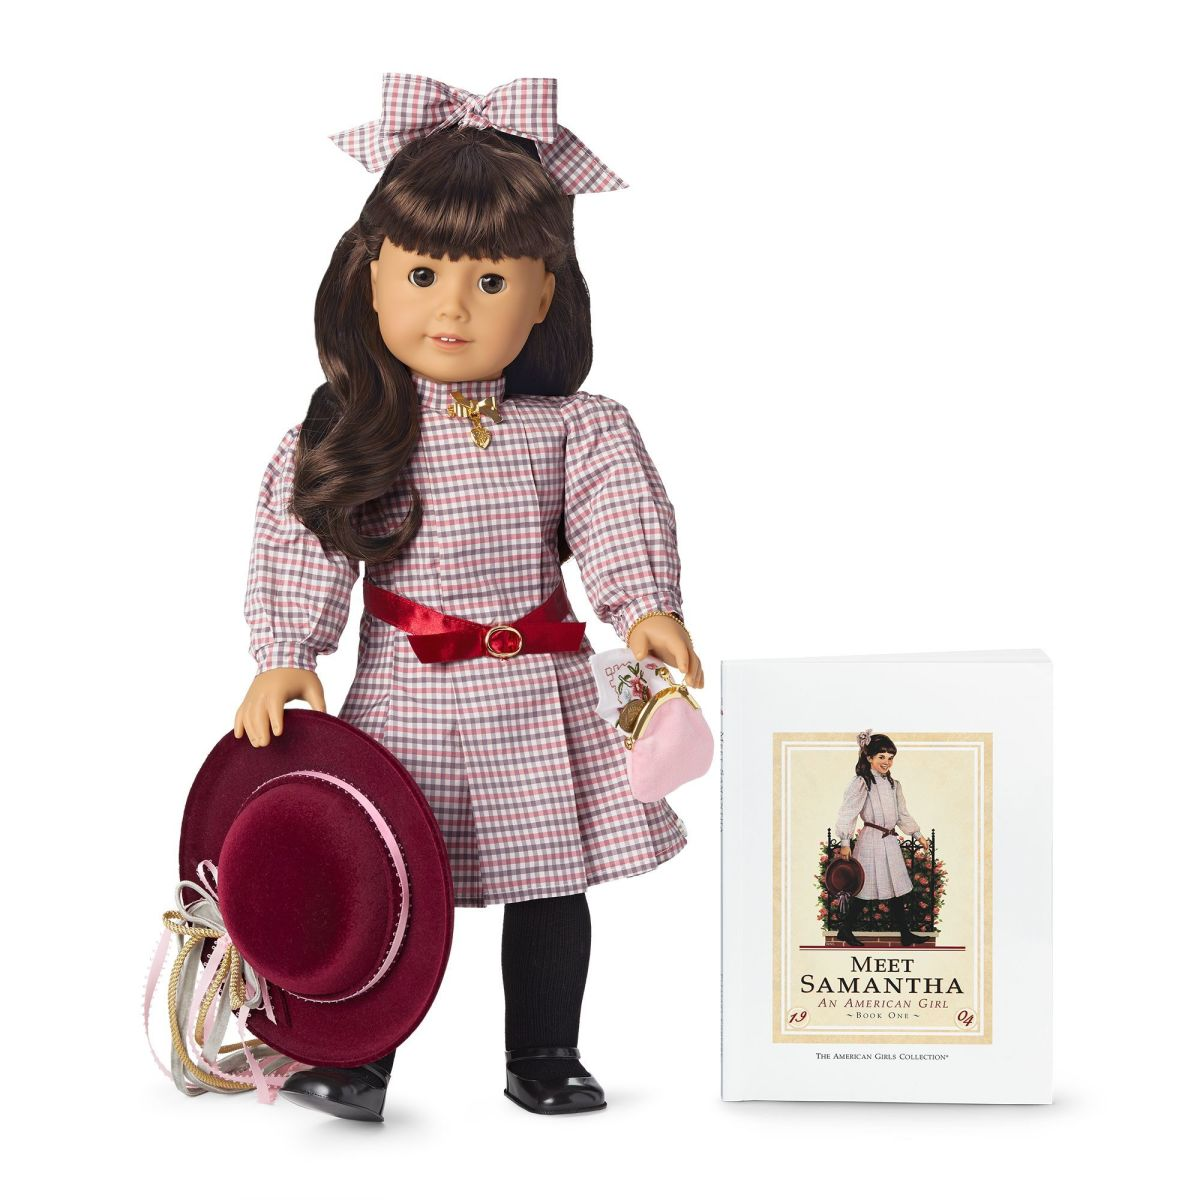 A 35th Anniversary Samantha Doll, pictured with her accessories and the Meet Samantha book